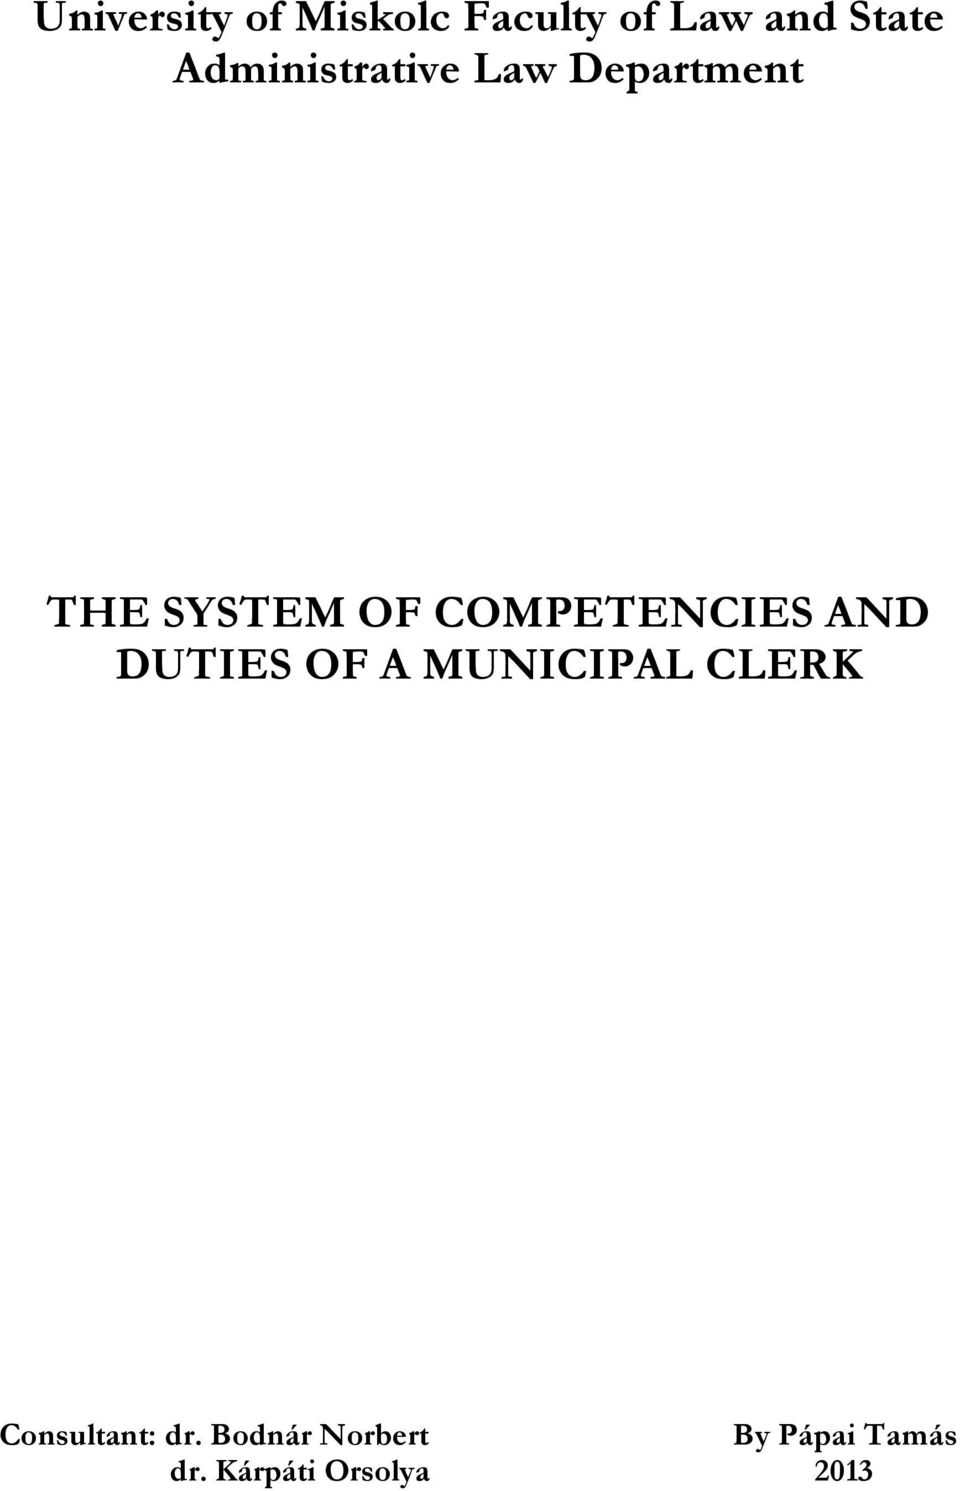 COMPETENCIES AND DUTIES OF A MUNICIPAL CLERK